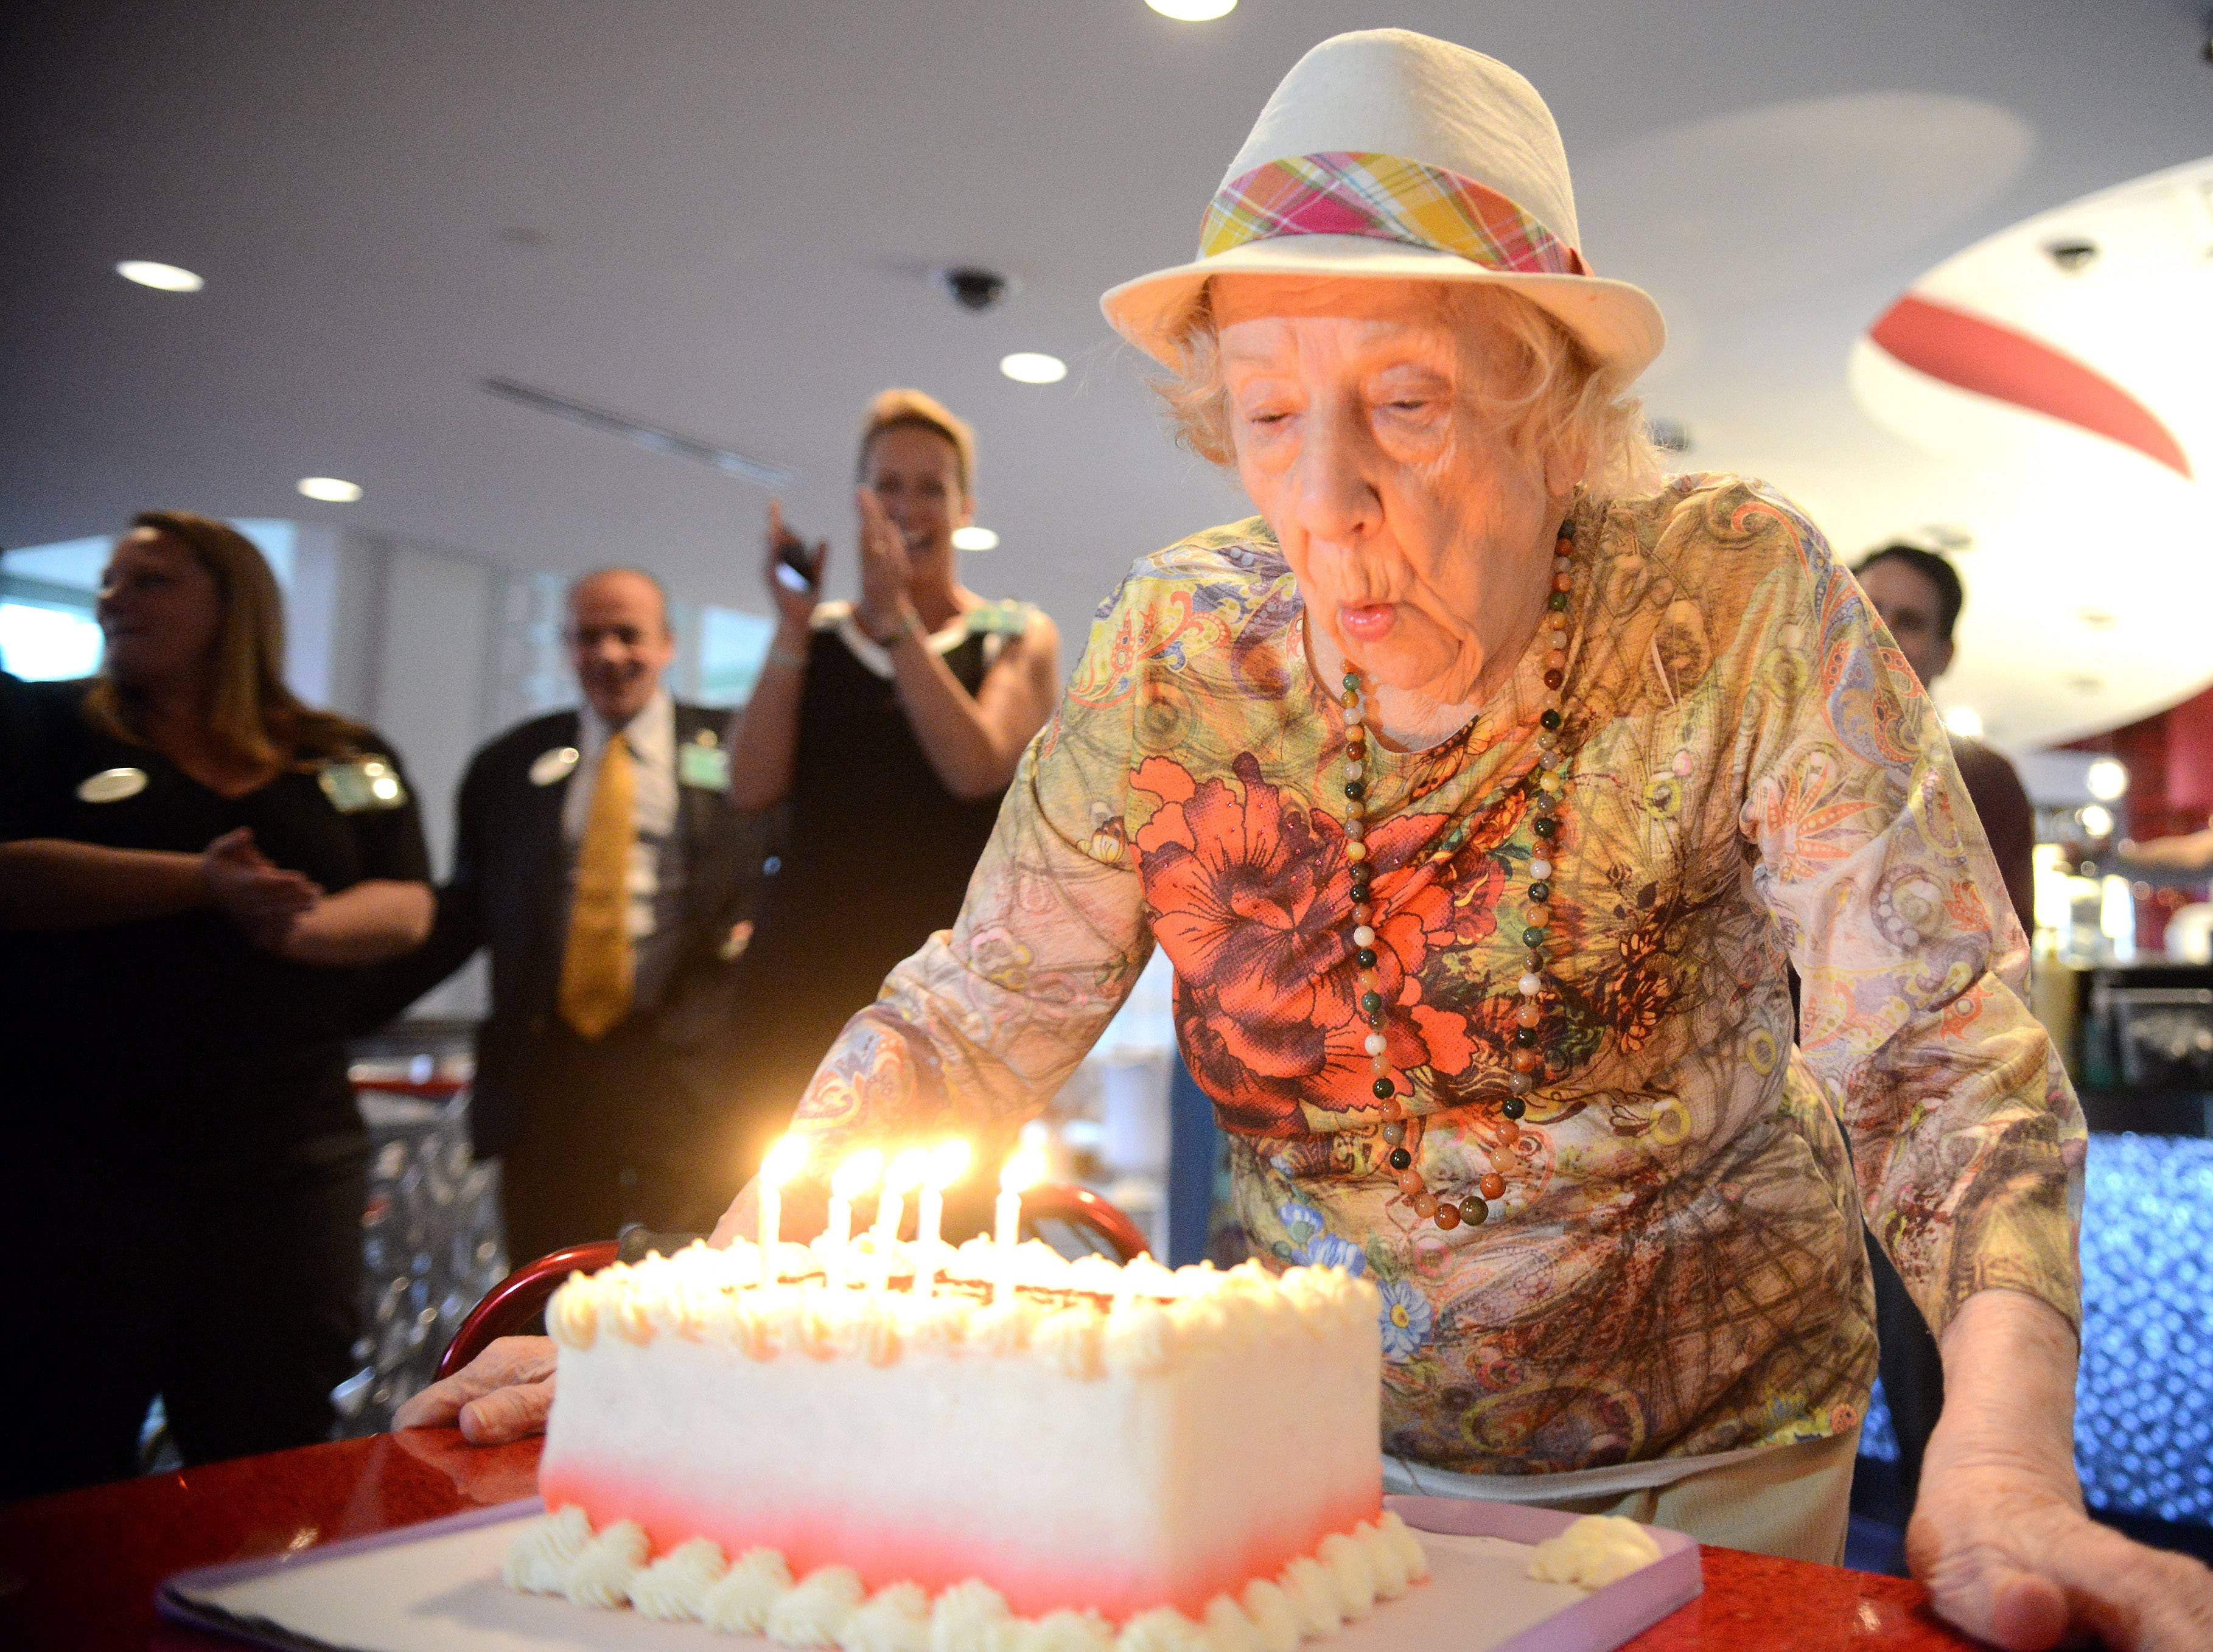 "Clarice Colangelo, of Elmhurst, blows out the candles while celebrating her 101st birthday at Prime BurgerHouse at the Grand Victoria Casino in Elgin Monday. She been coming to gamble at the casino every Monday and Thursday for about 8 years. She used to come with her sister before her passing, but now comes with either her son Larry or daughter Lenice. Her family and many staff members gathered to help her celebrate and sing. She said she usually plays video poker or slots and the most she's won in one day was about $600. ""Where else can you get this kind of excitement, the grocery store?,"" she asked."